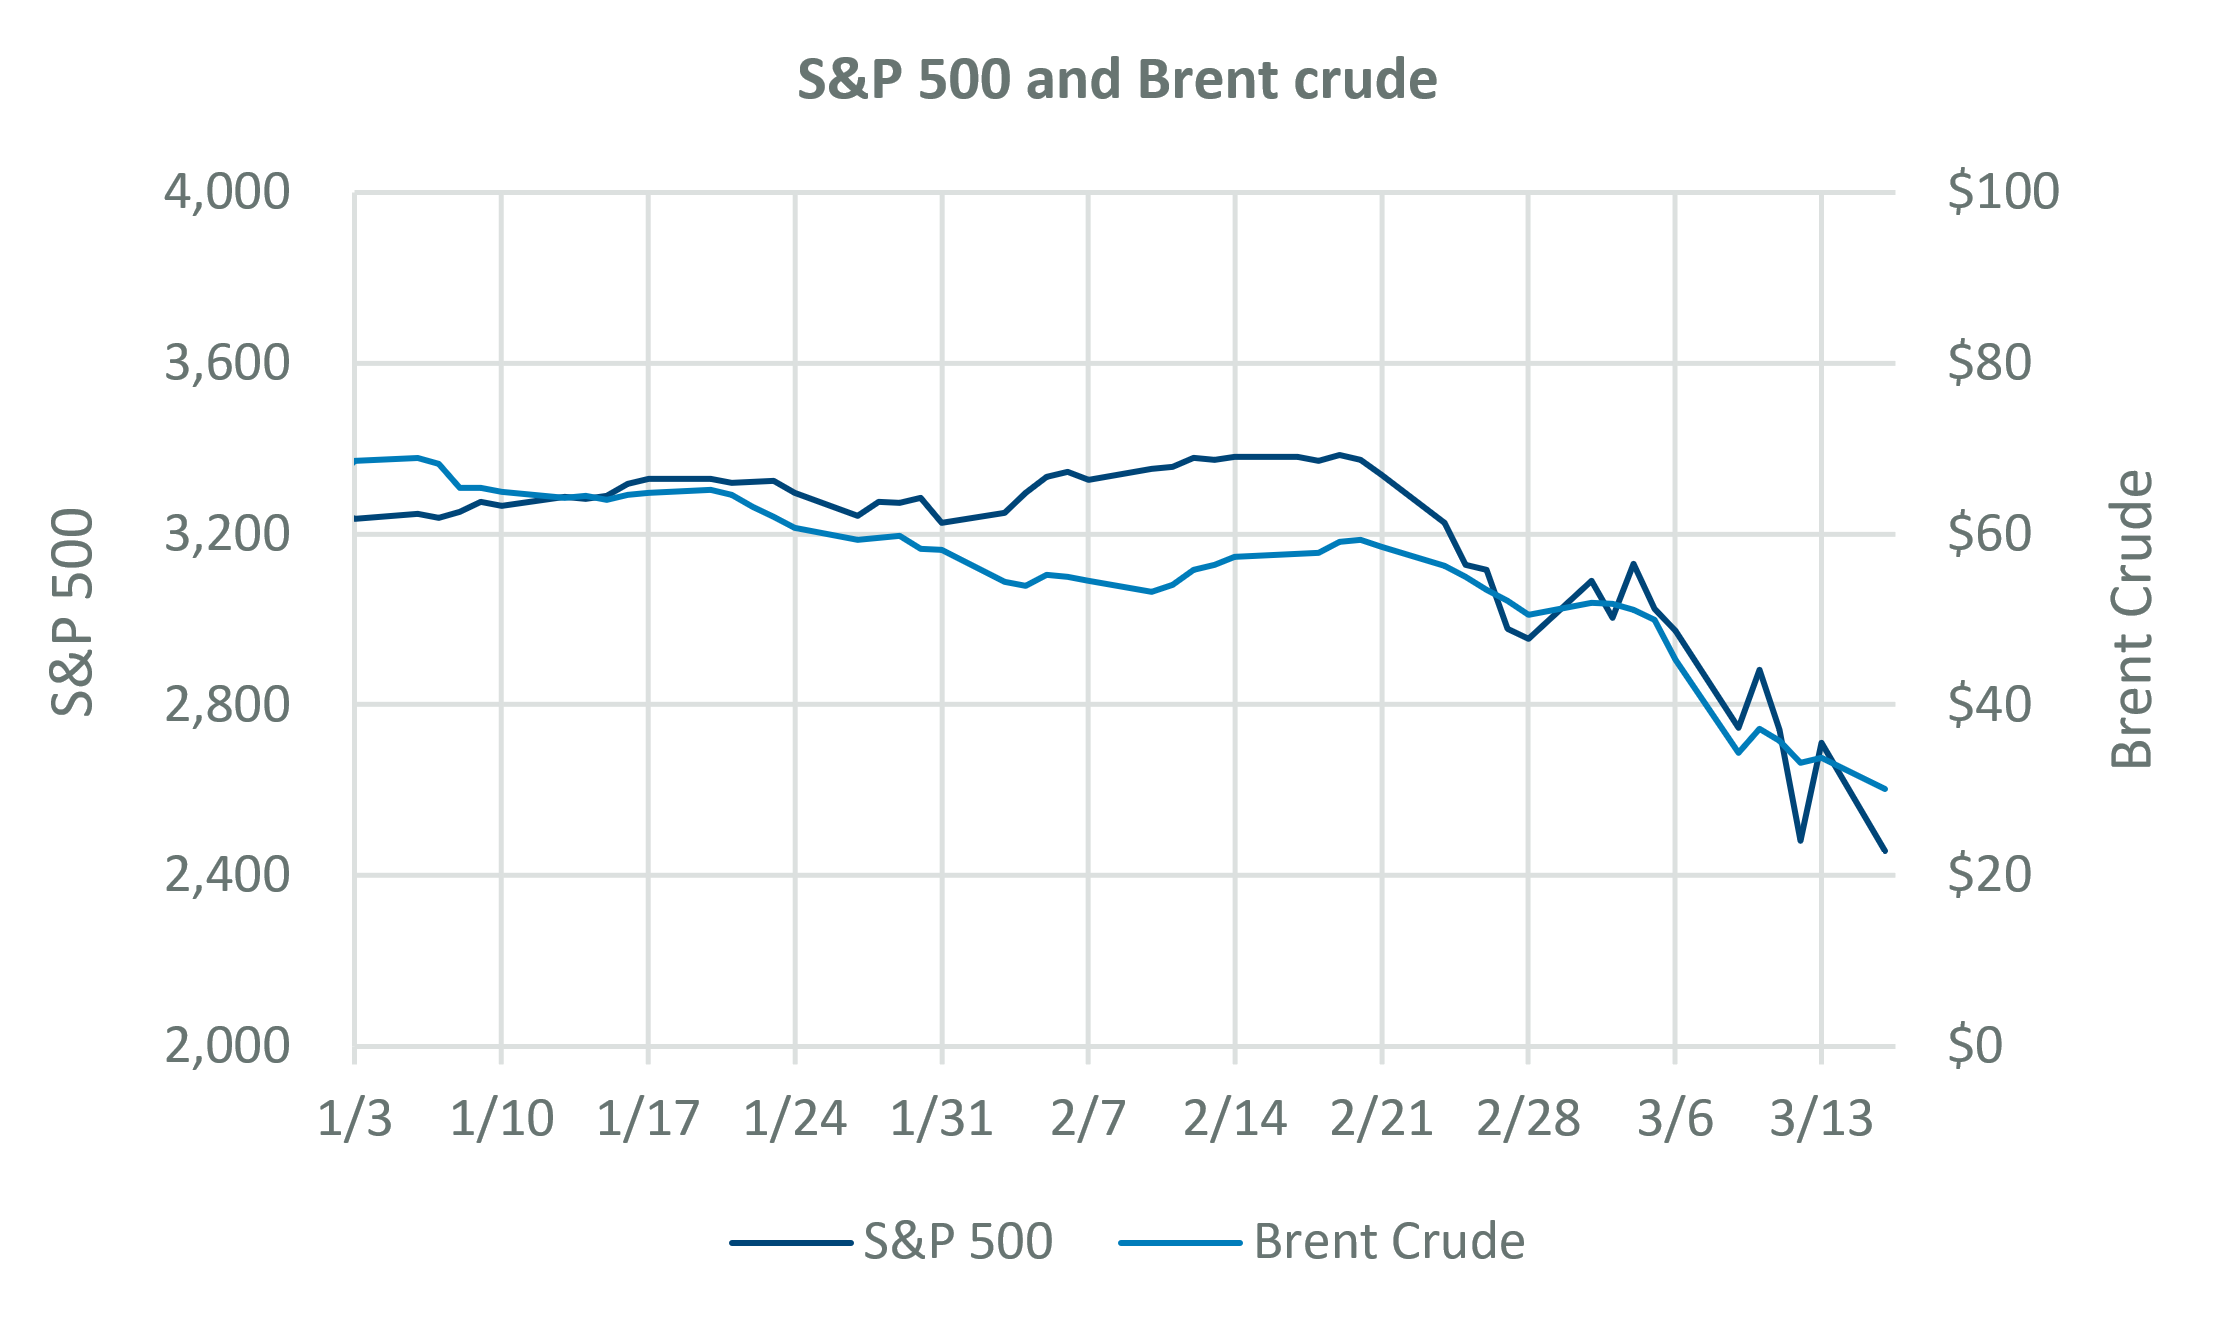 S&P 500 and Brent crude